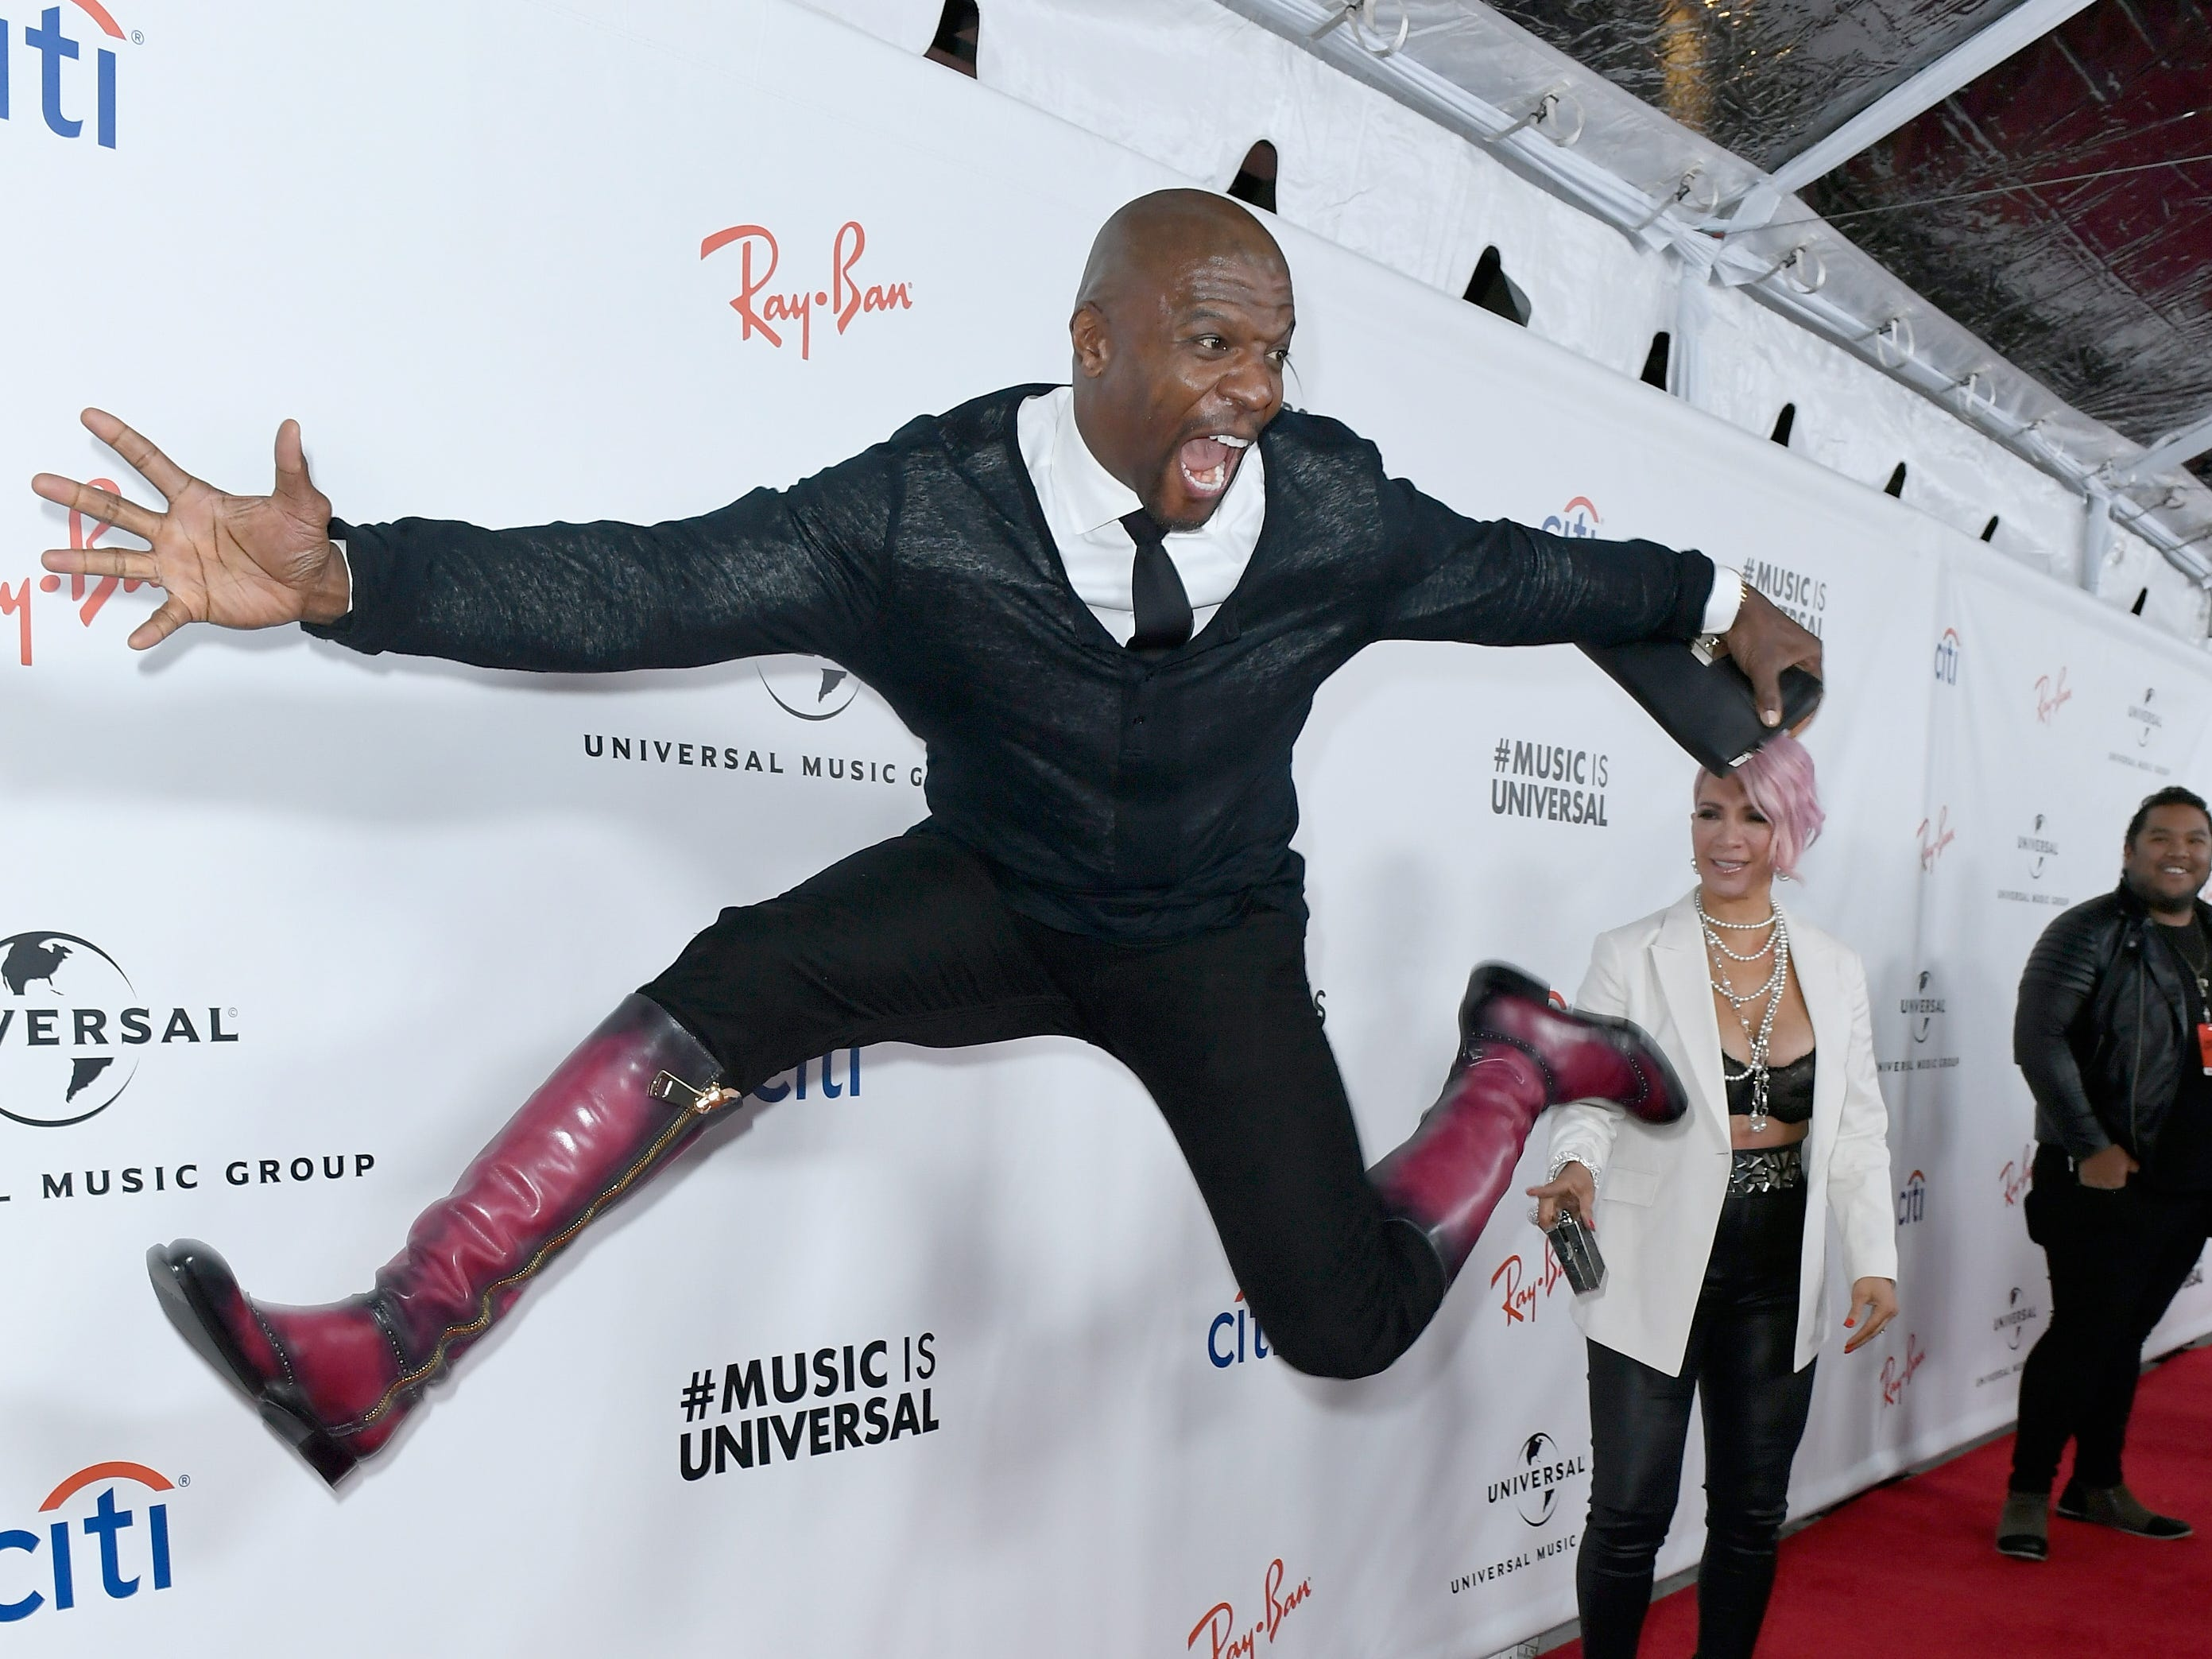 Terry Crews attends Universal Music Group's Grammys 2019 after party on Feb. 10, 2019 in Los Angeles.